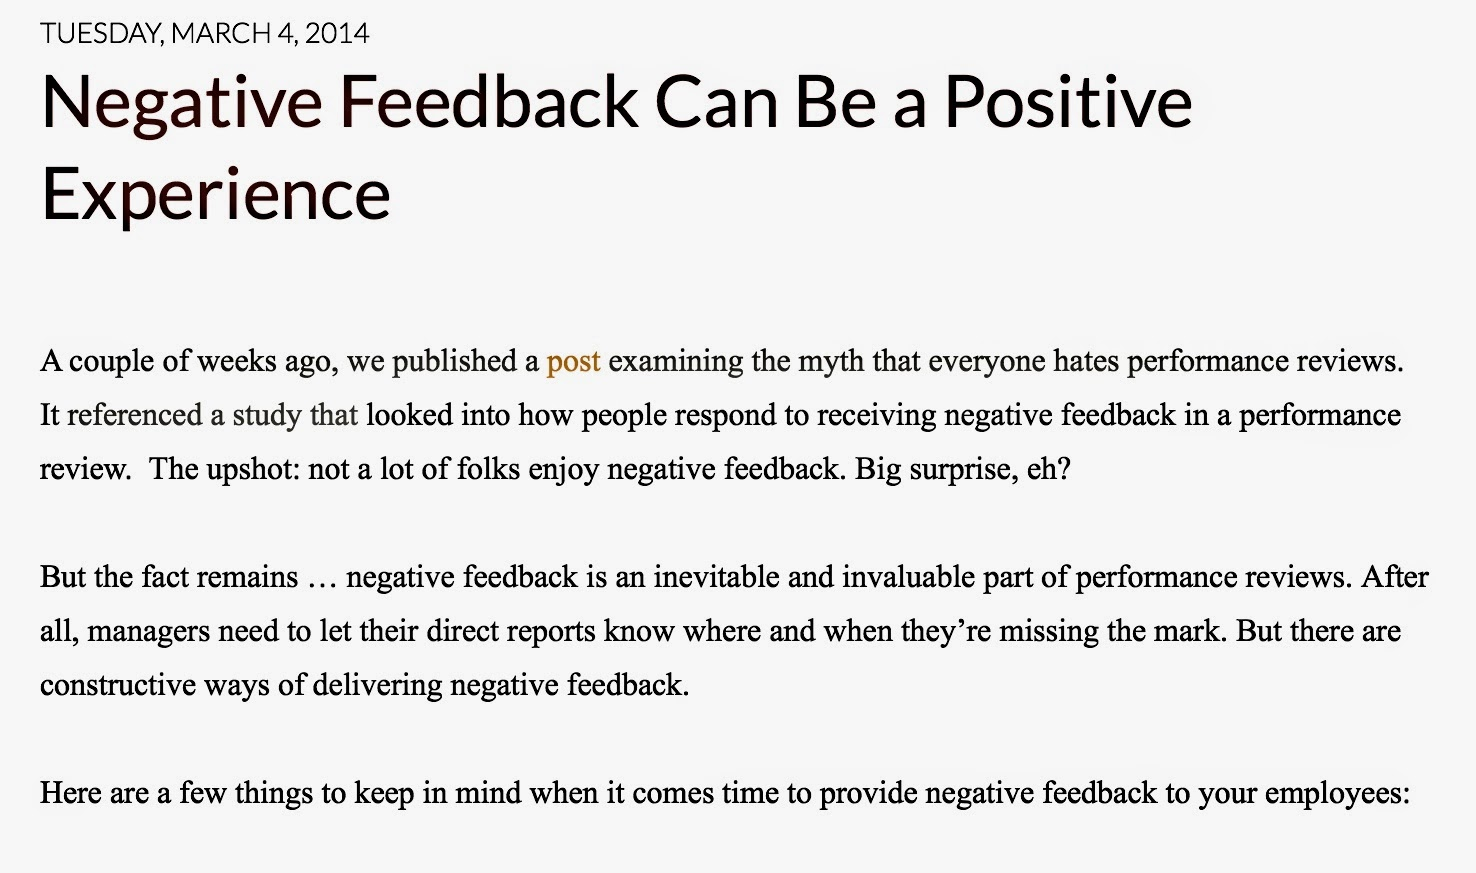 http://blog.reviewsnap.com/2014/03/negative-feedback-can-be-positive.html